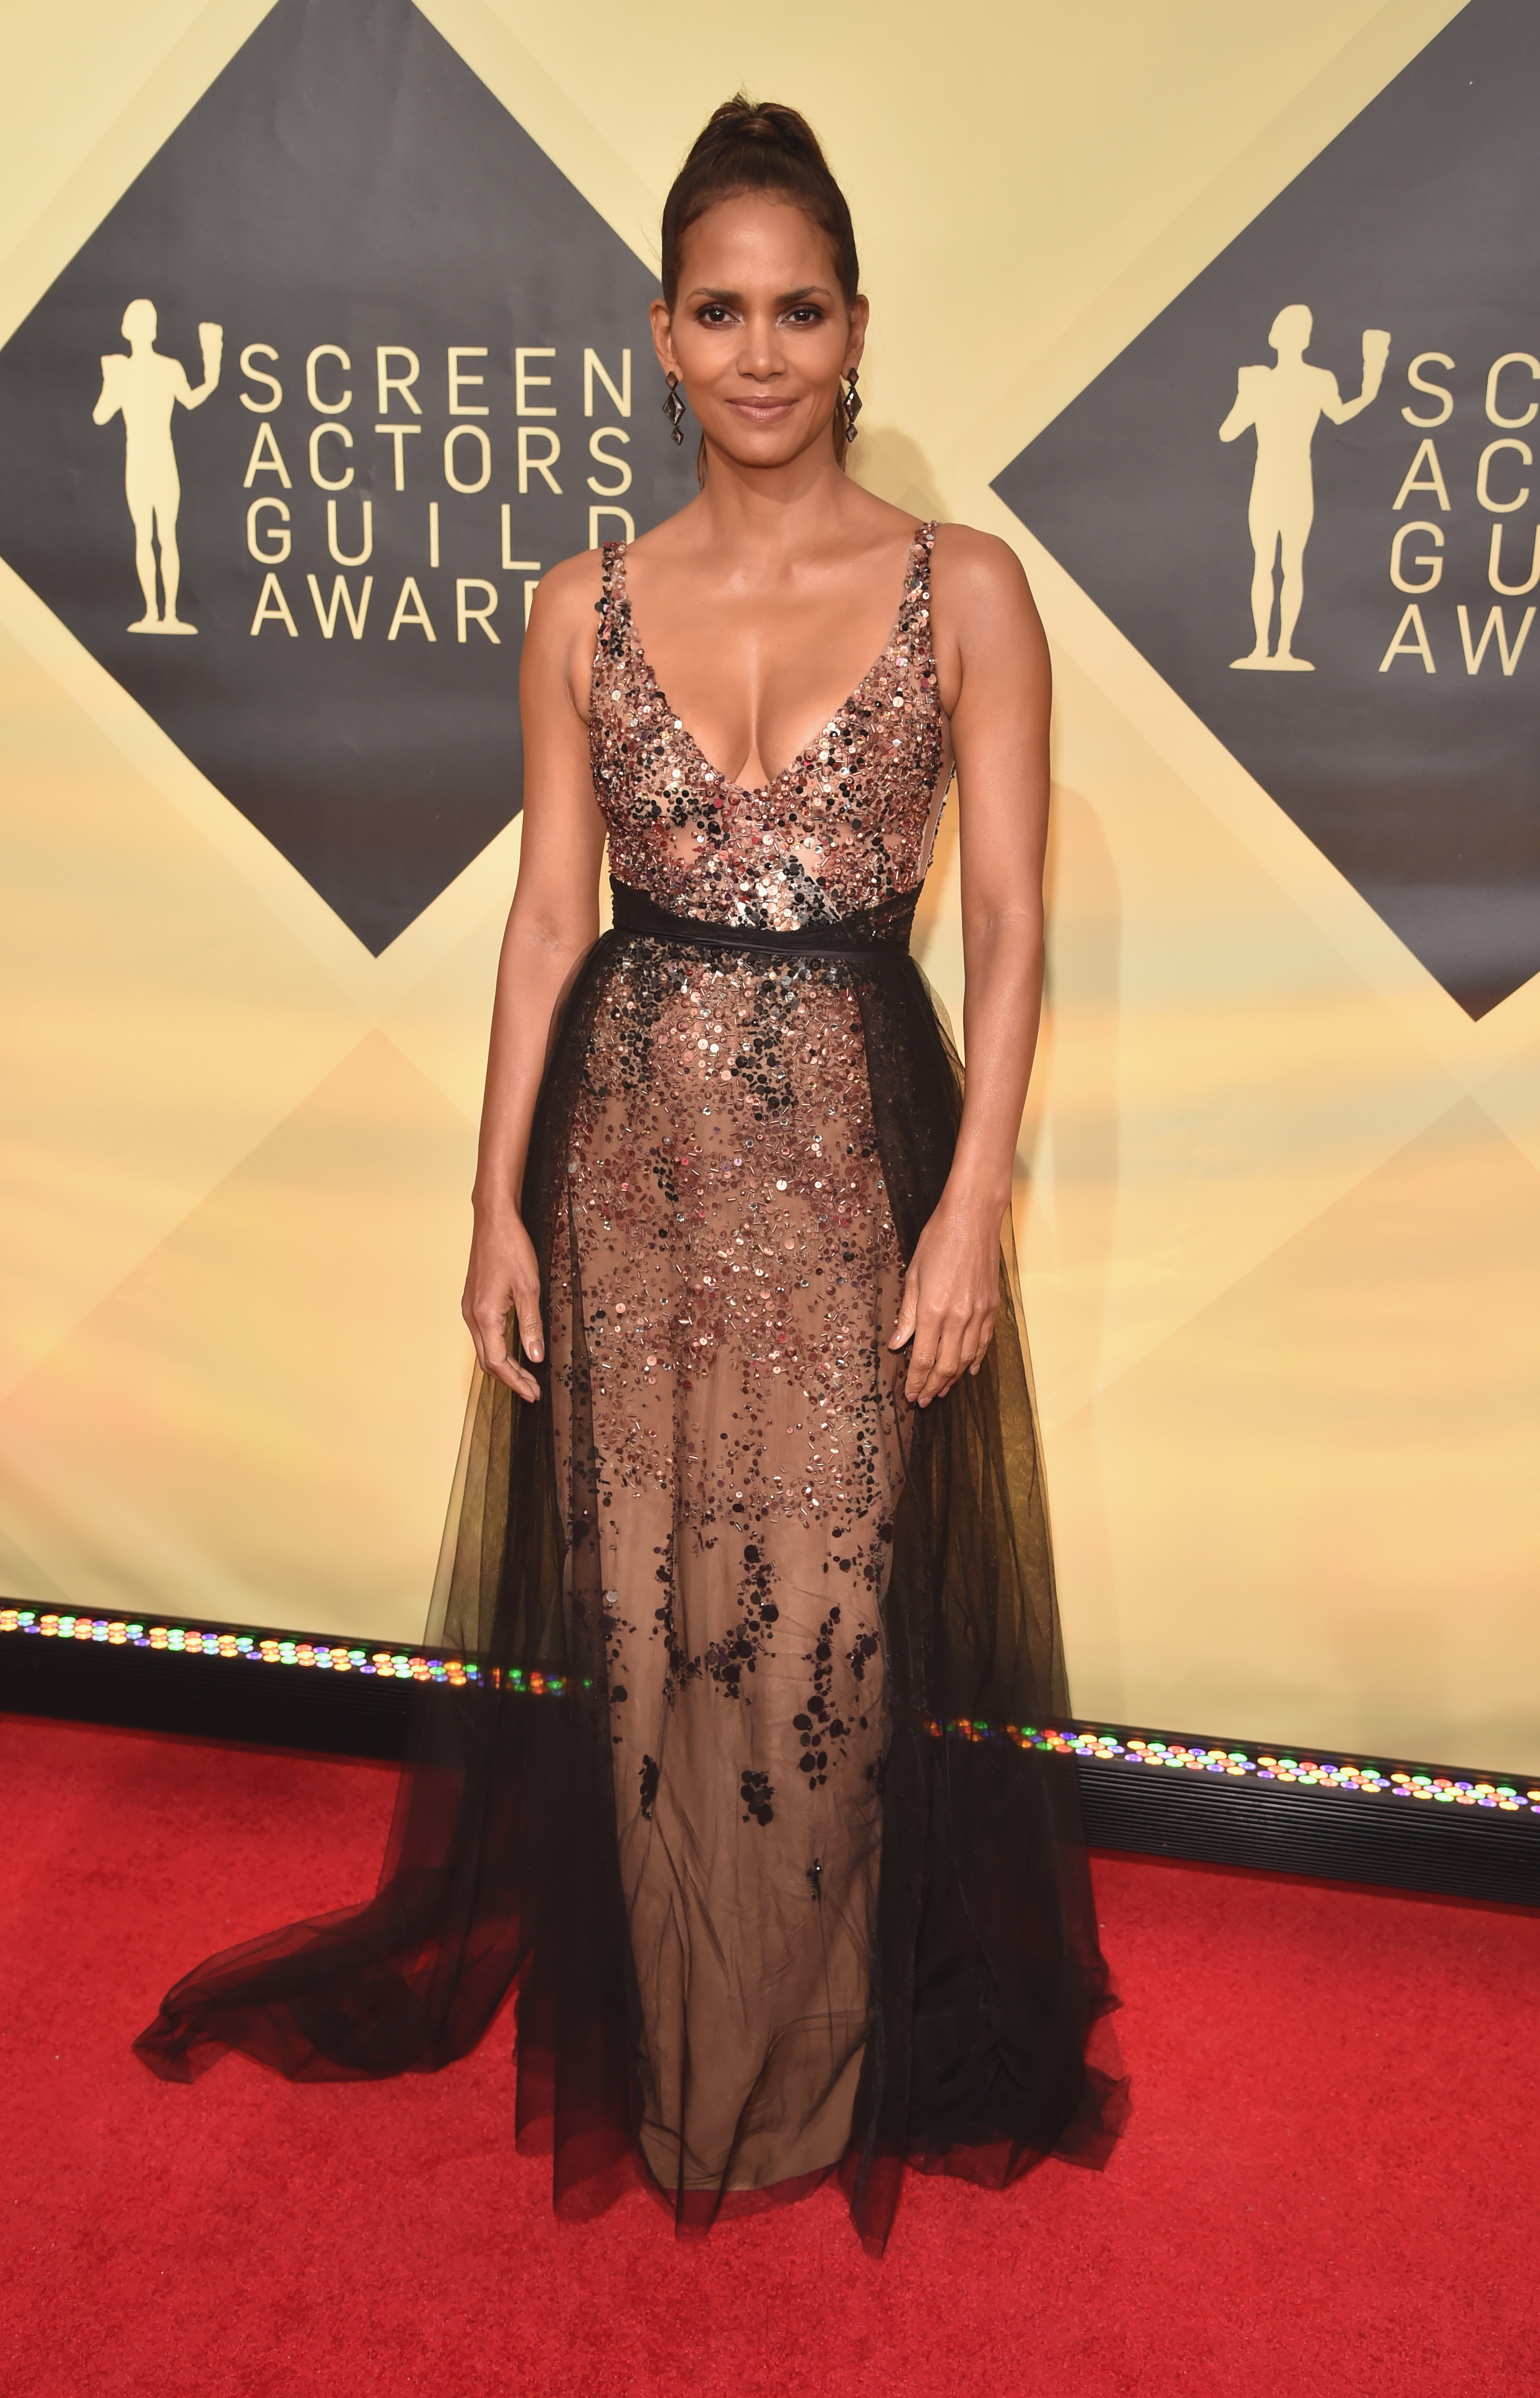 24th Annual Screen Actors Guild Awards – Red Carpet